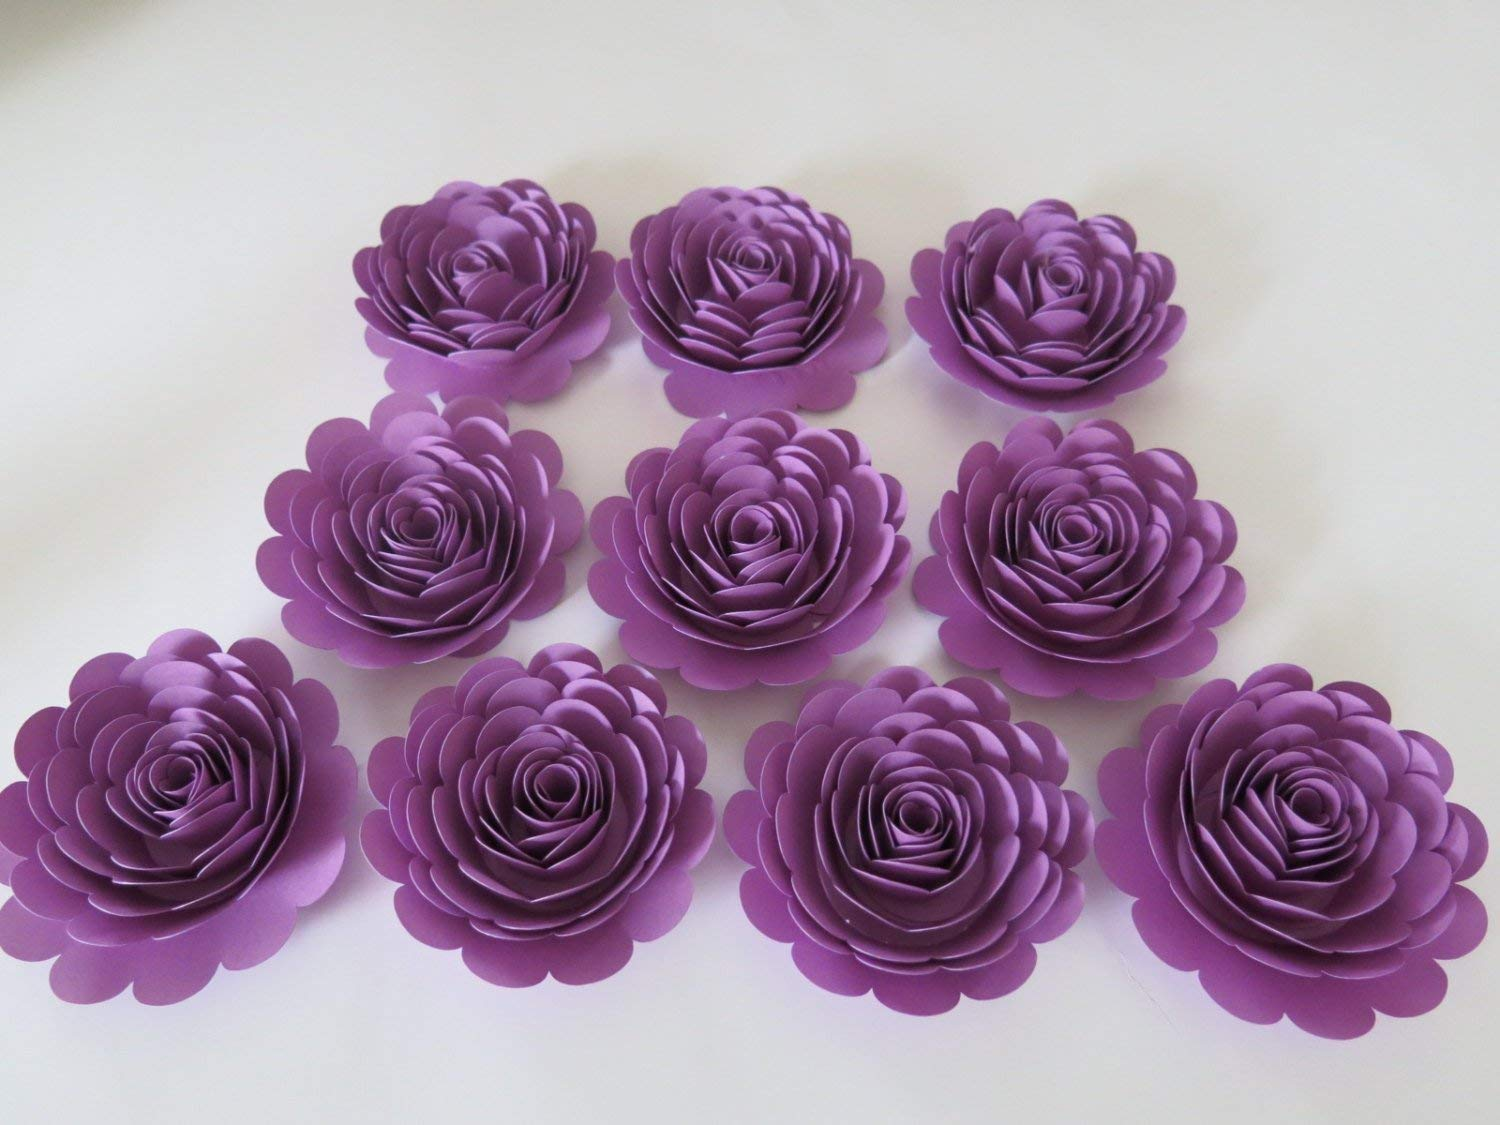 Pretty-Purple-Roses-Set-10-Big-Artificial-Paper-Flowers-3-Blossoms-Girl-Tea-Party-Table-Centerpiece-Twilight-Birthday-Theme-Night-Sky-Bedroom-Decor